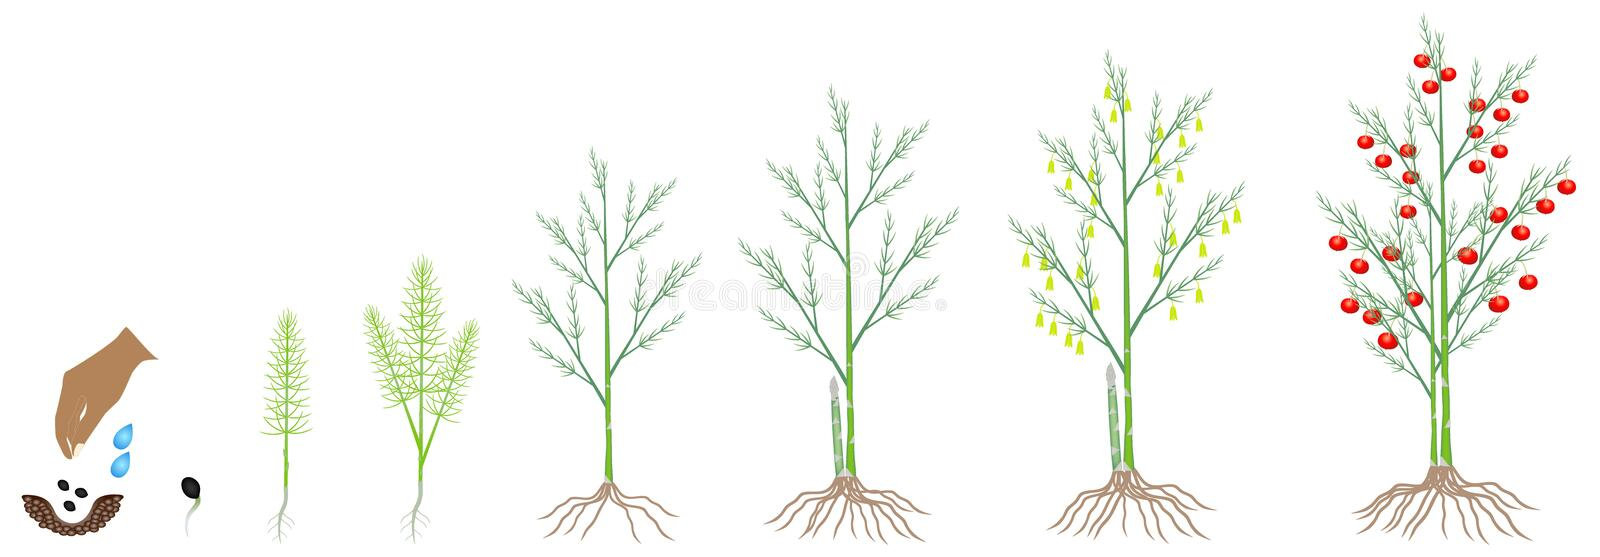 Cycle of growth of a asparagus plant on a white background. Cycle of growth of a asparagus plant on a white background, beautiful illustration vector illustration